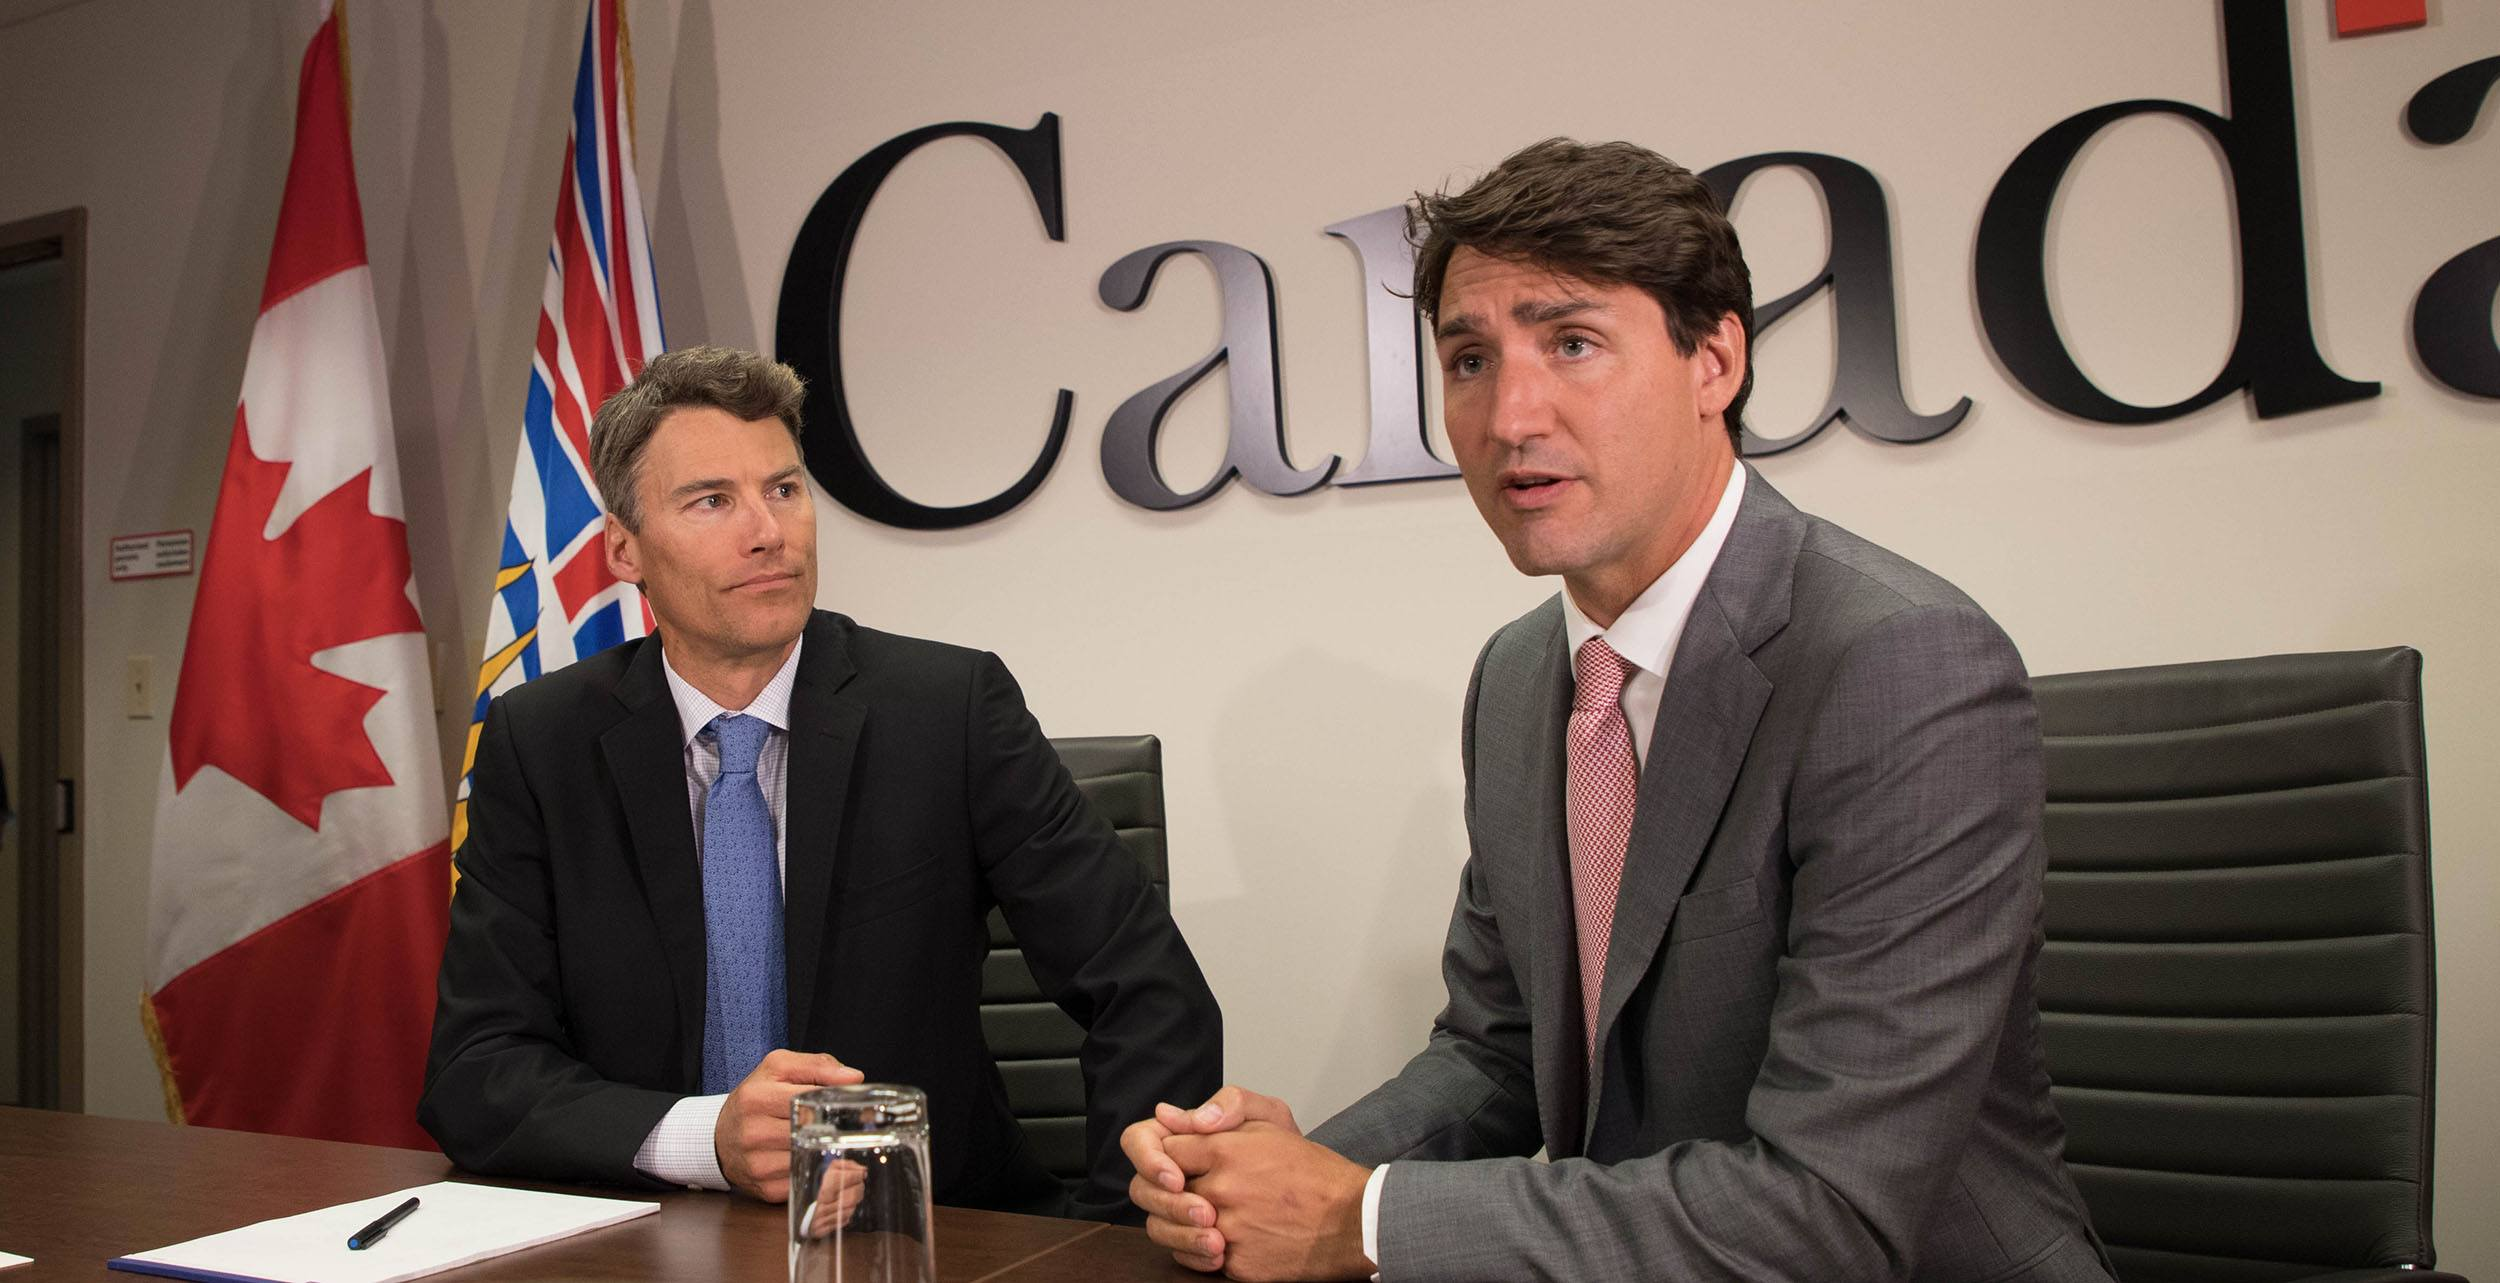 Vancouver Mayor Gregor Robertson with Justin Trudeau in Vancouver on August 1, 2017 (Jenni Sheppard/Daily Hive)